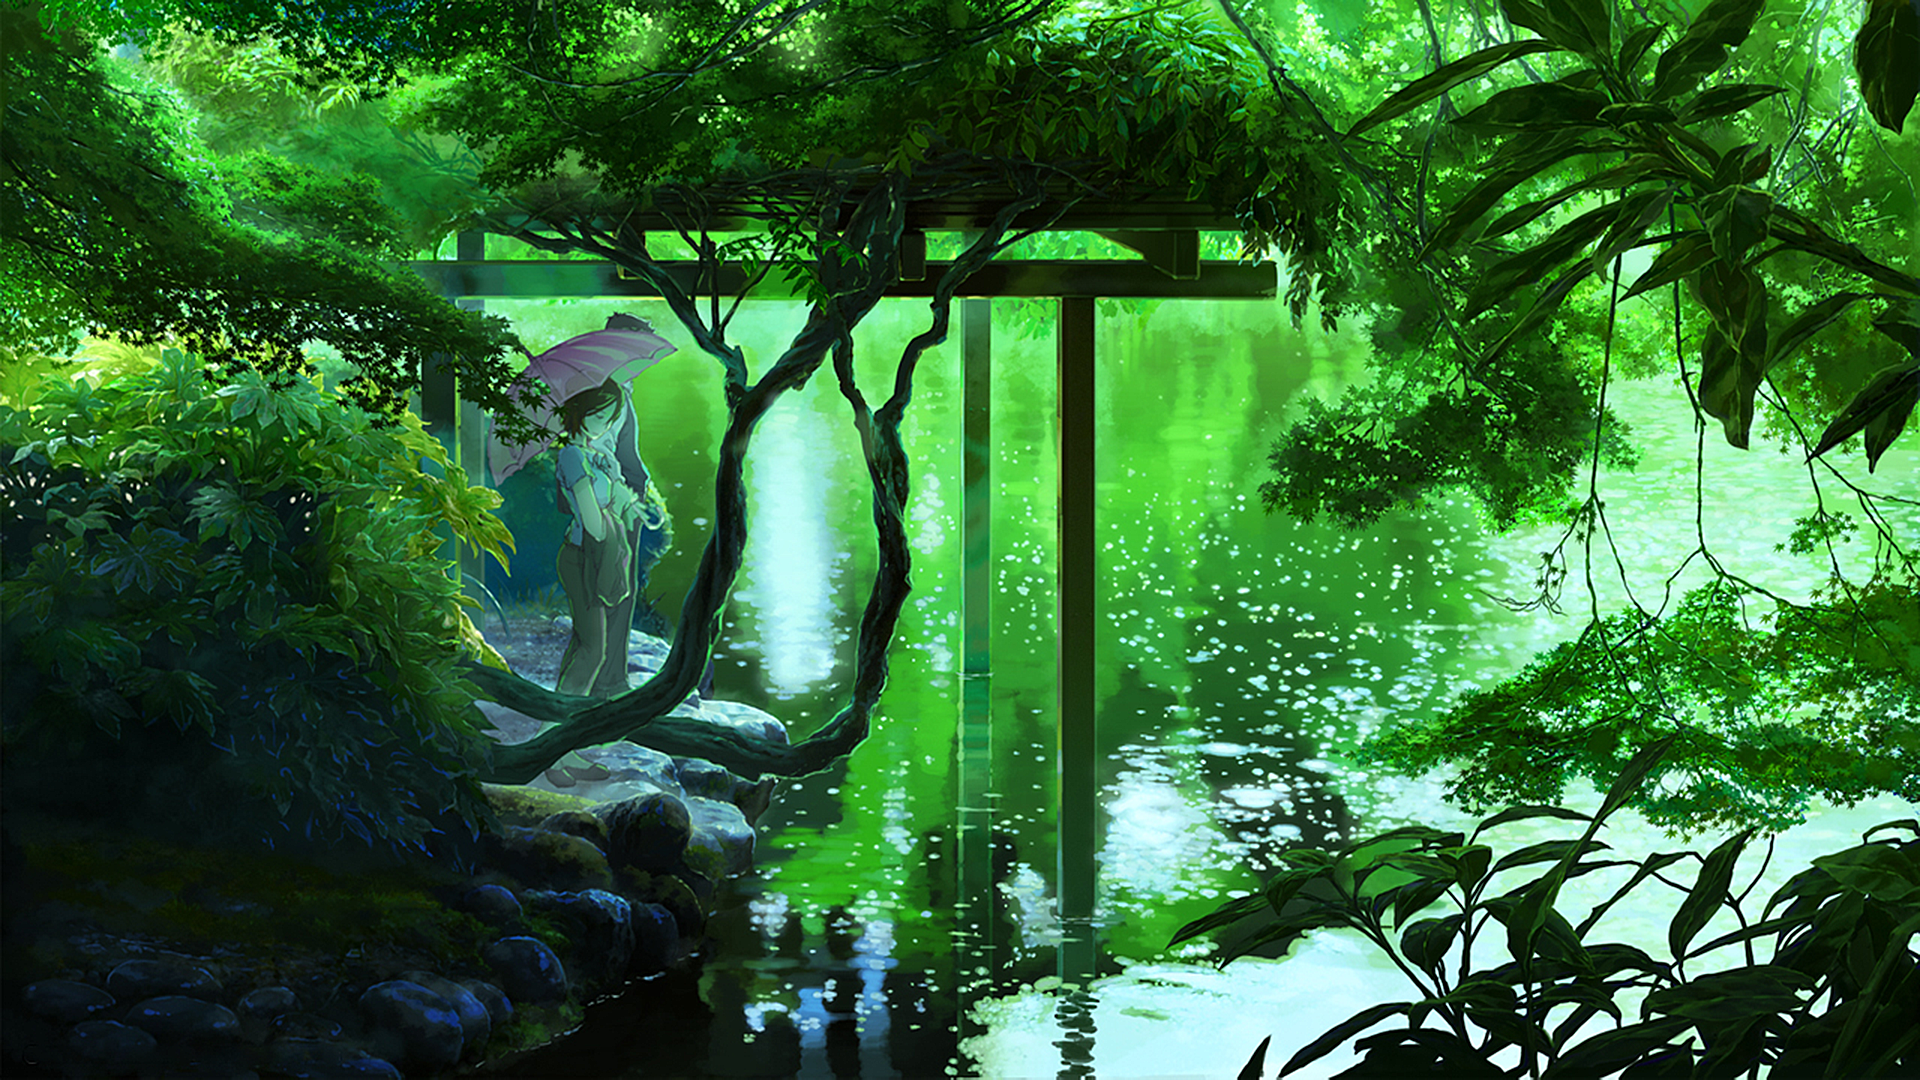 Lakes Plants Umbrellas Forests The Garden Of Words Nature Anime Green Wallpaper No 159011 Garden Of Words Plant Wallpaper Samsung Wallpaper